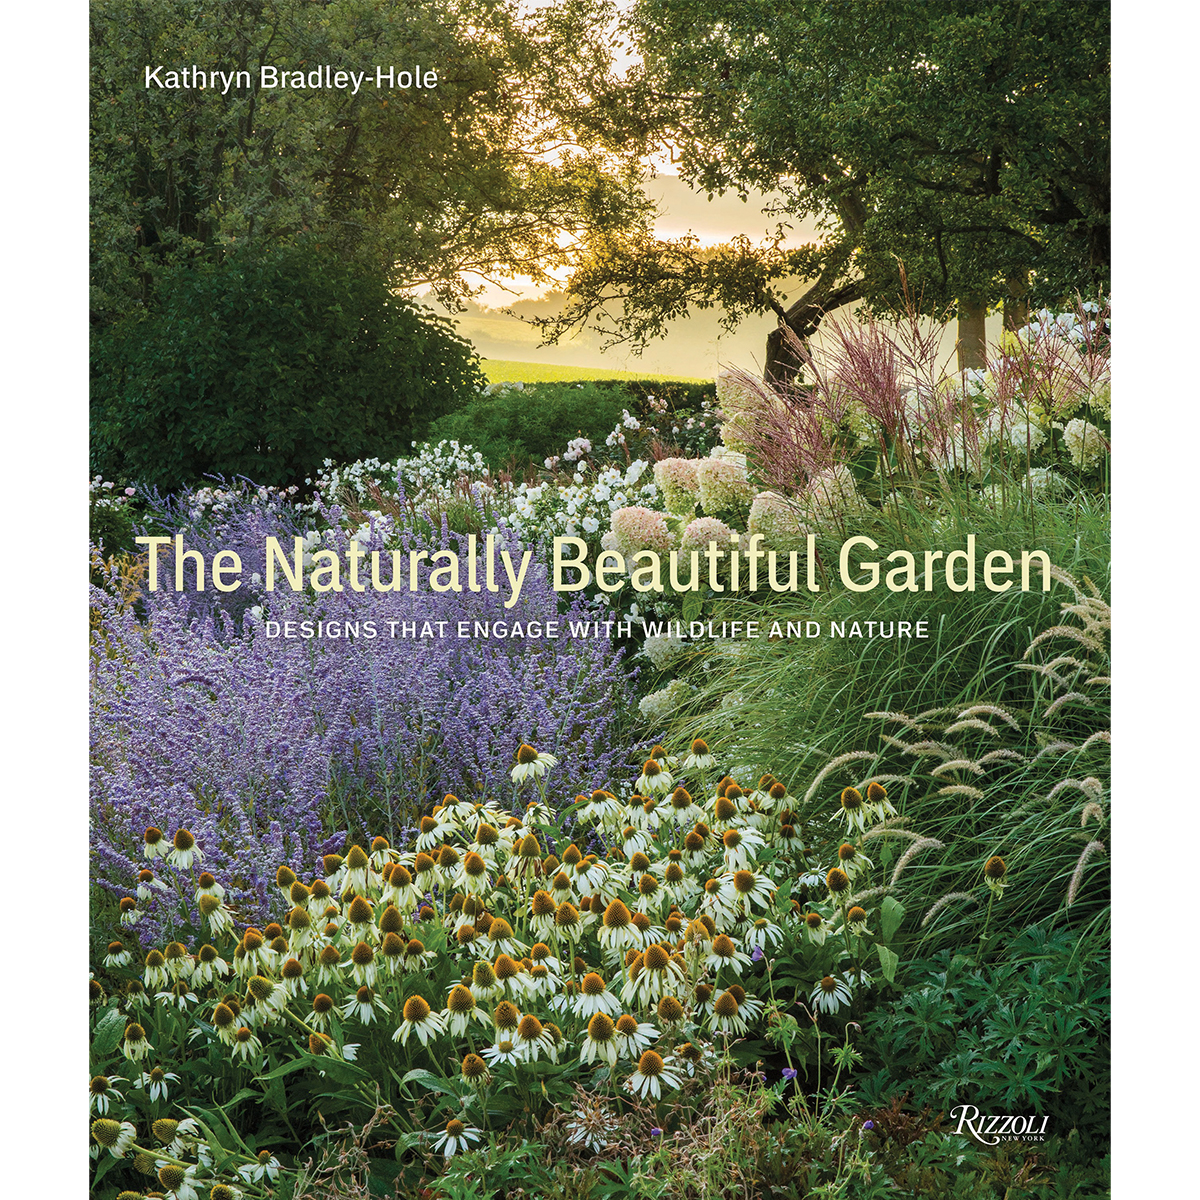 The Naturally Beautiful Garden (signed)